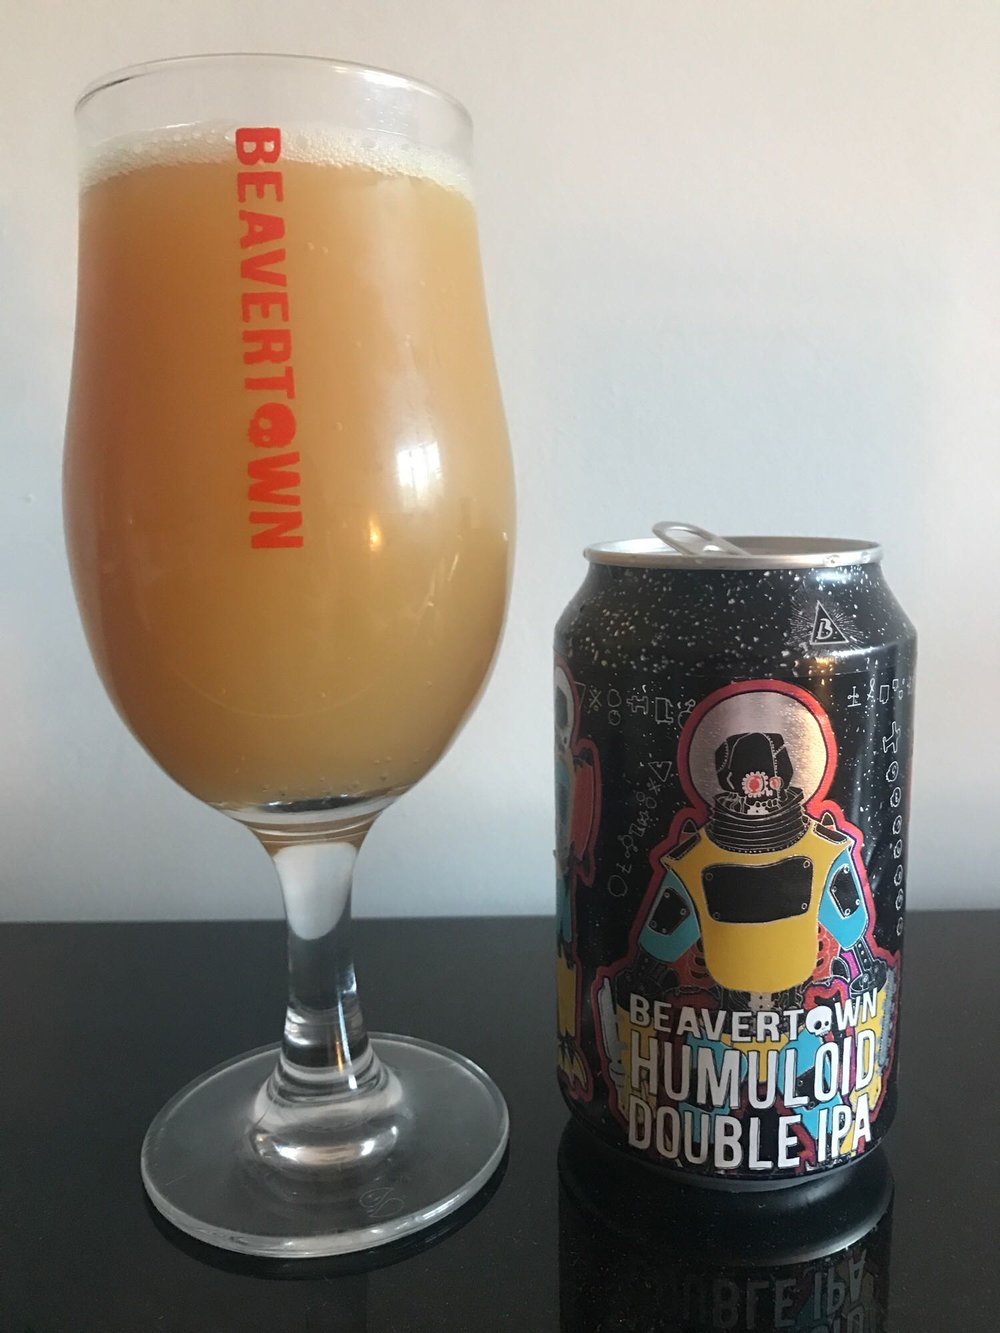 Humuloid - Double IPA 8% // Beavertown - Bang on the Hedges brand comes this 8% DIPA. I feel like Bill Murray right now. Except I would willingly repeat all of these beers FOREVER. This is quite probably the murkiest beer I think I've ever had. We cracked open a few of these one evening and I thought they tasted a little raw and vegetable-y. If someone had poured them into a bowl, I would've genuinely thought it was some sort of soup. The souped up version of Lupuloid, if you will. I resisted opening my can and left it a few weeks to reach its peak and I'm glad I did as good things come to those who wait and all that. This was the second big bastard version of a Beavertown beer I've had this year following on from Double Chin (the daddy version of Neck Oil) and this was the superior beer. Continuing the trend of juicy, fruity DIPAs, this was a welcome addition - I'm not sure it's a style I'm ever going to get bored of so maybe I do need a thesaurus.